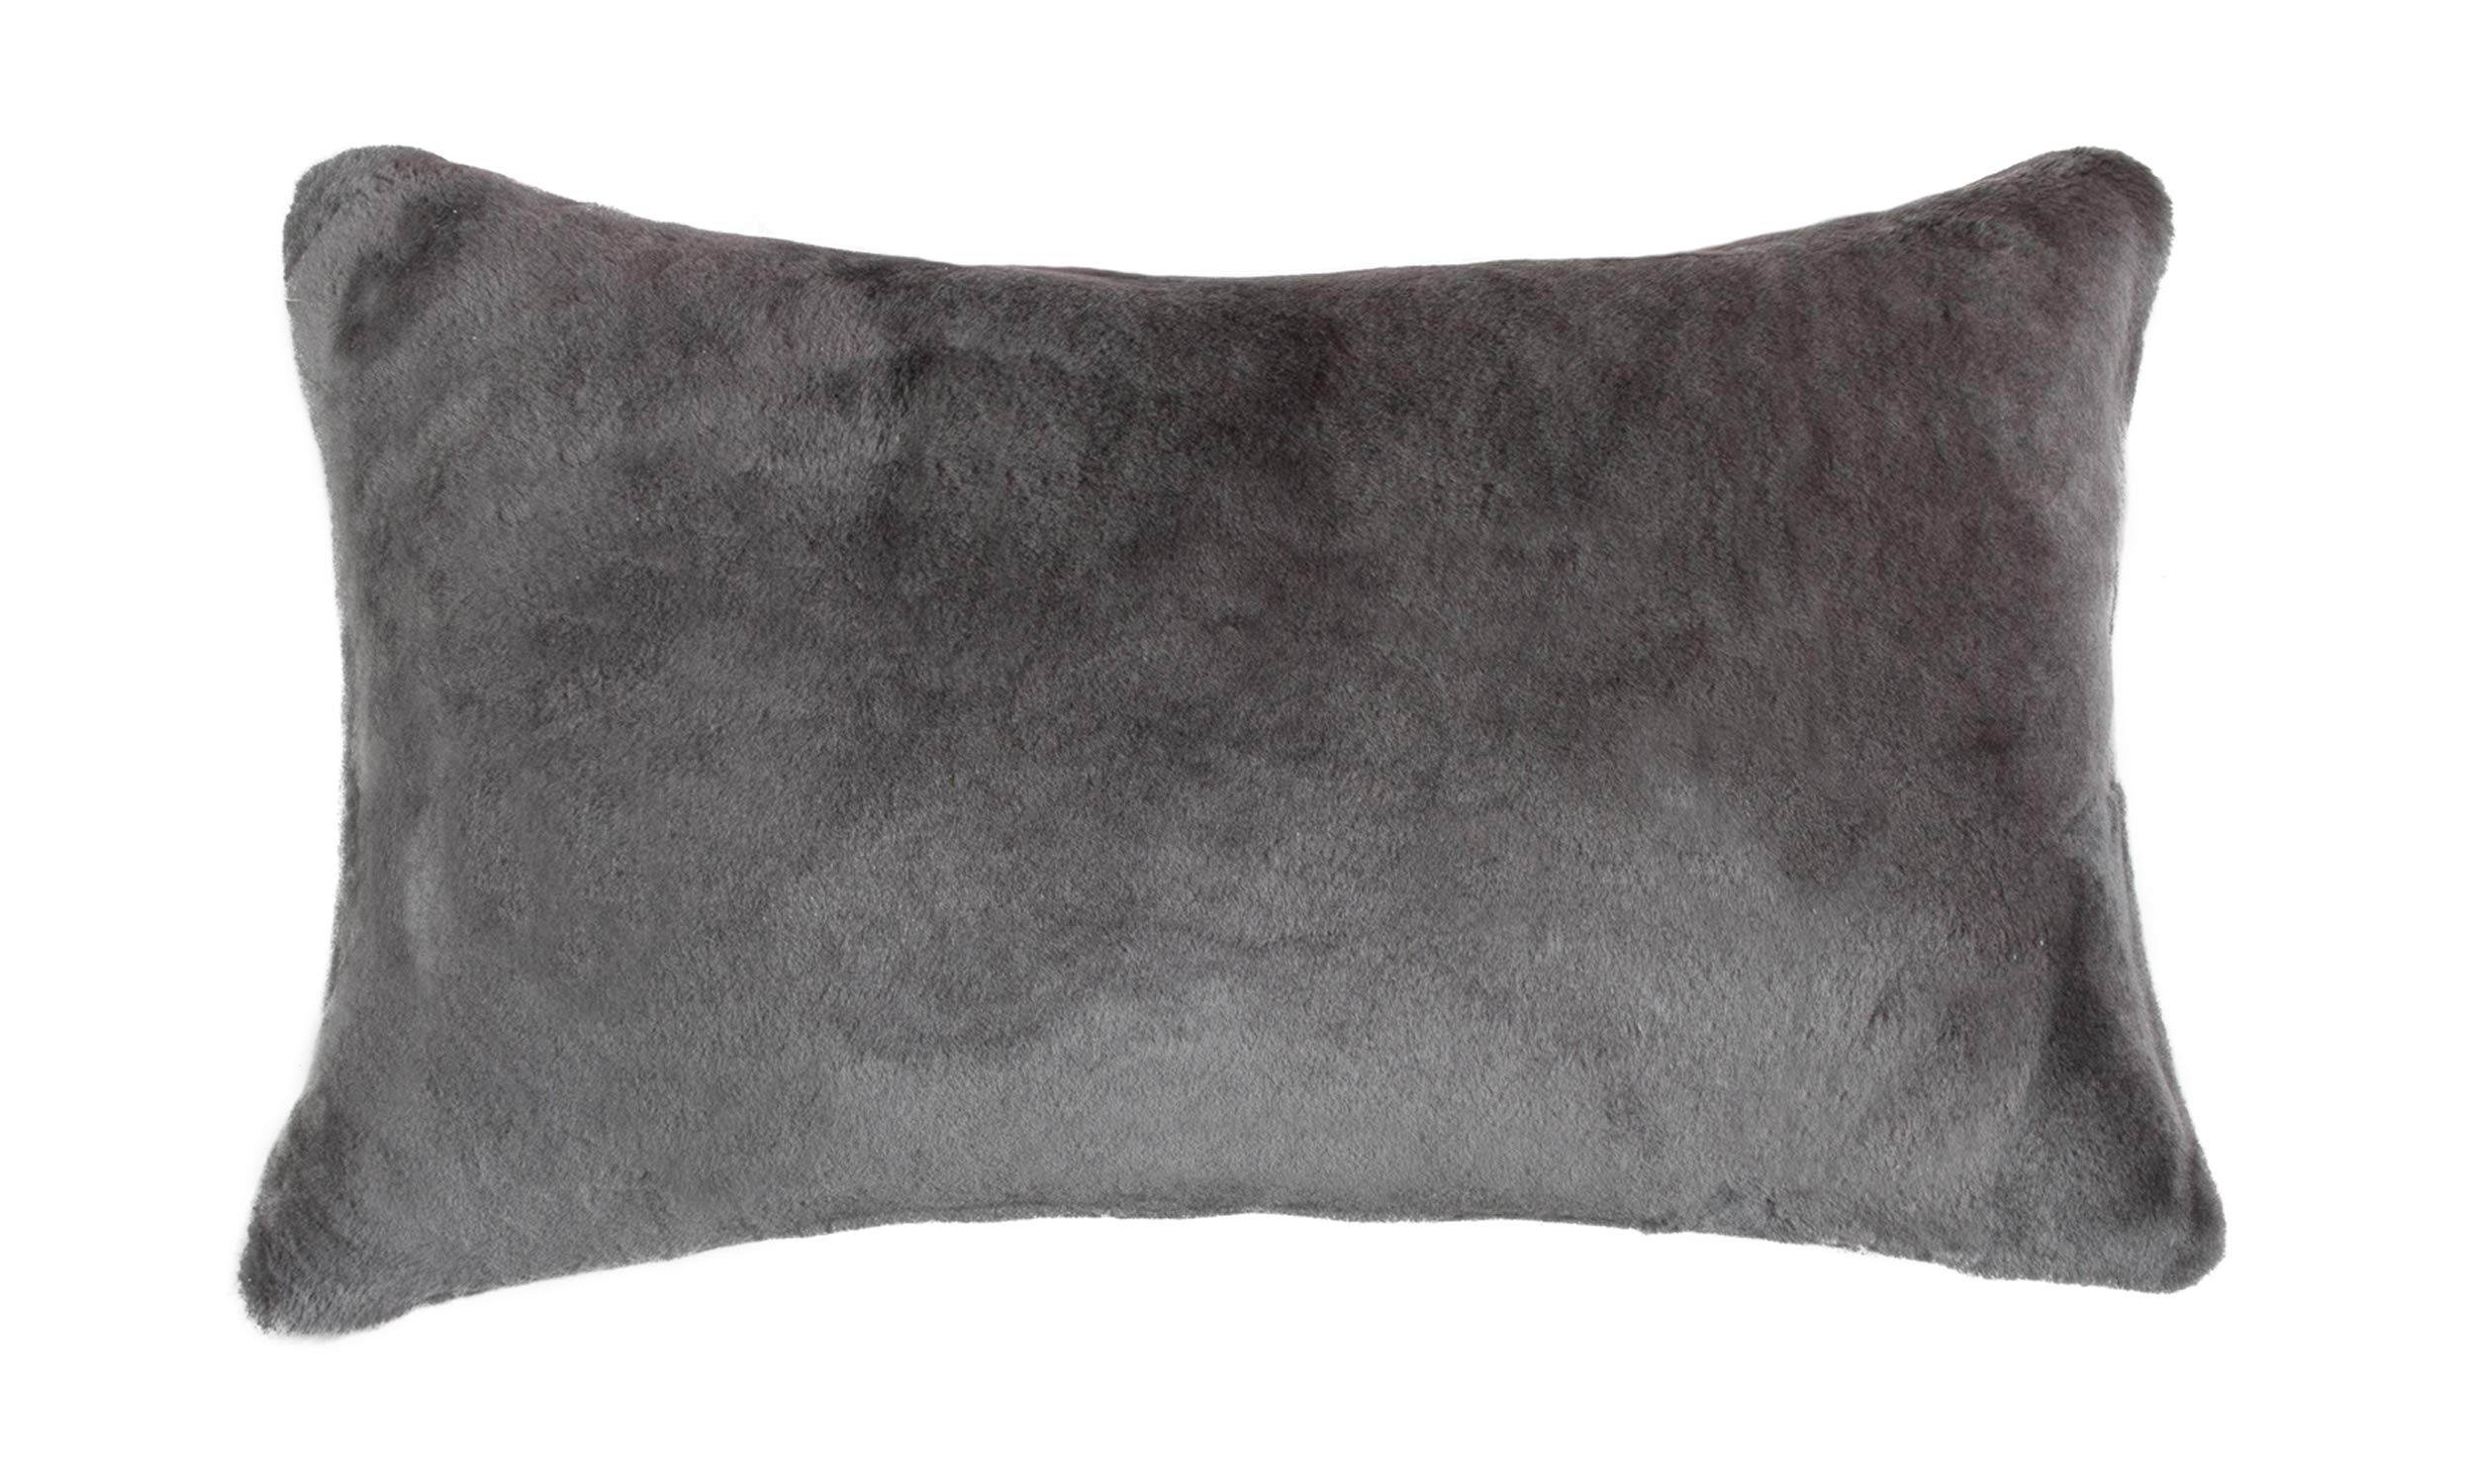 Natural Luxury Soft Premium Quality Durable Thick & Lush 100% Nelson Sheepskin Fur Pillow, Grey ( 12 in x 20 in ) by Natural Design Architecture Lifestyle N